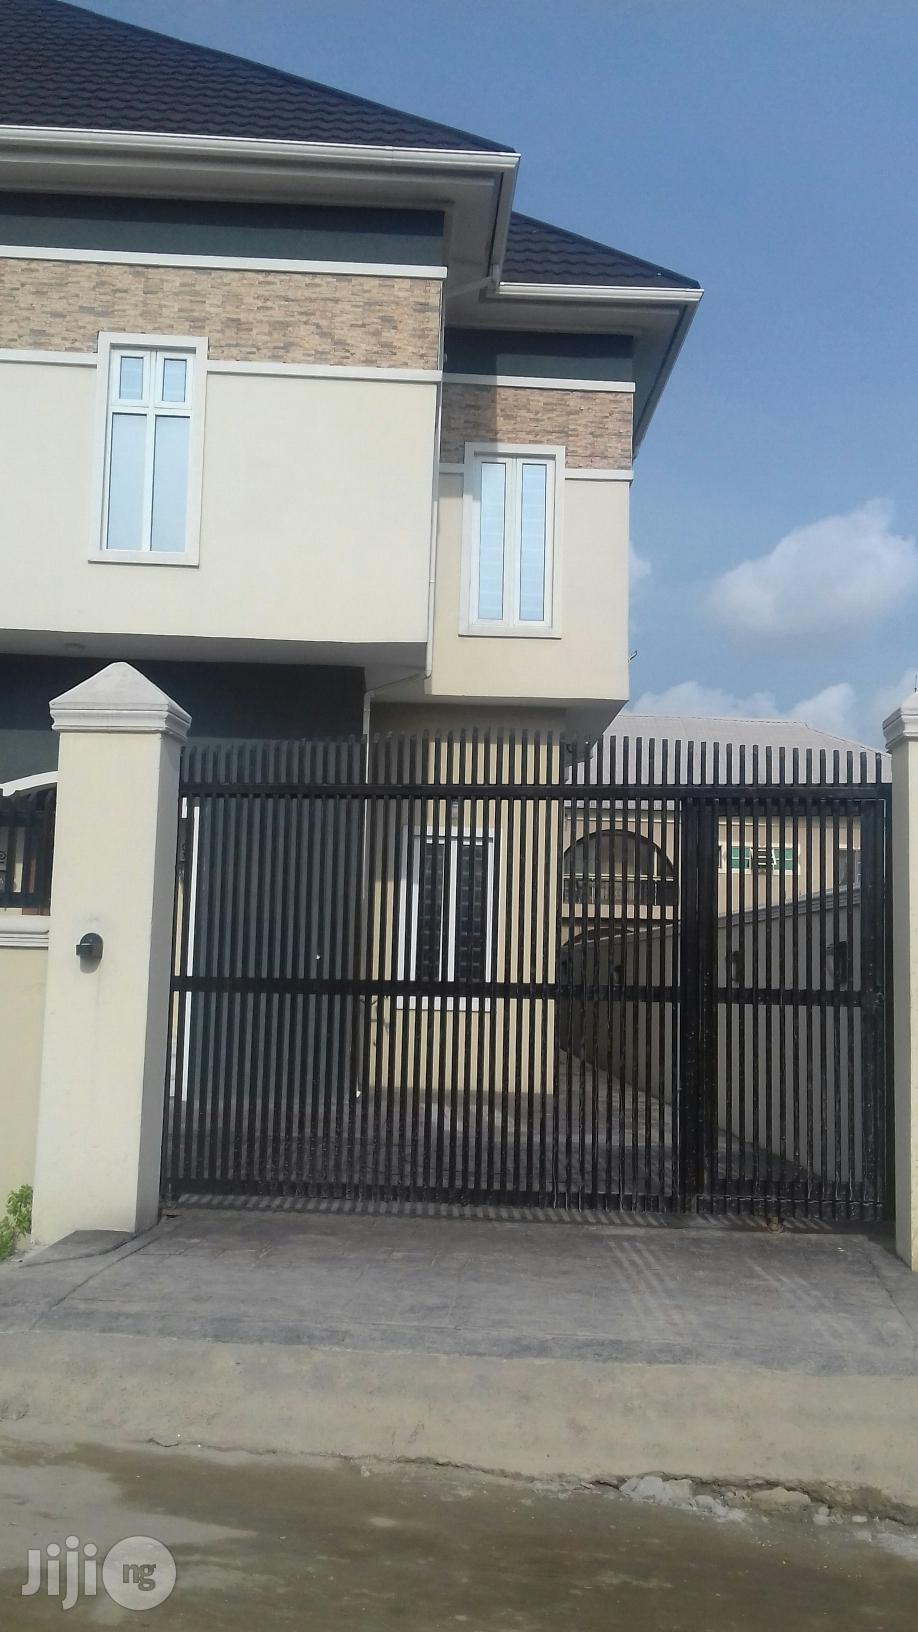 C of O,5 Bedroom Duplex, Lakeview Estate Amuwo-Odofin   Houses & Apartments For Sale for sale in Amuwo-Odofin, Lagos State, Nigeria